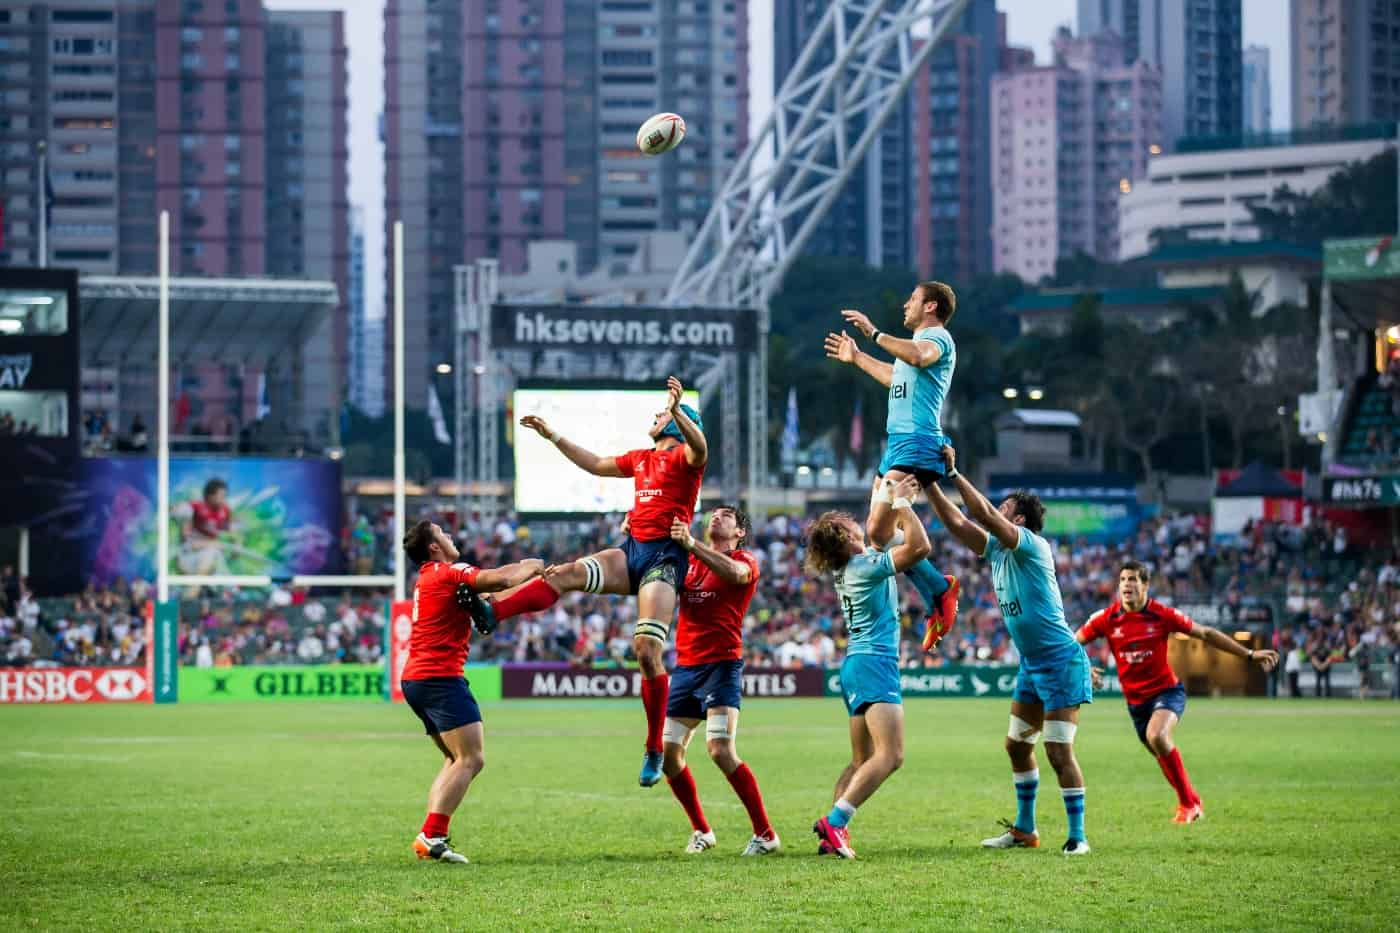 image-of-hong-kong-rugby-sevens-action-23017